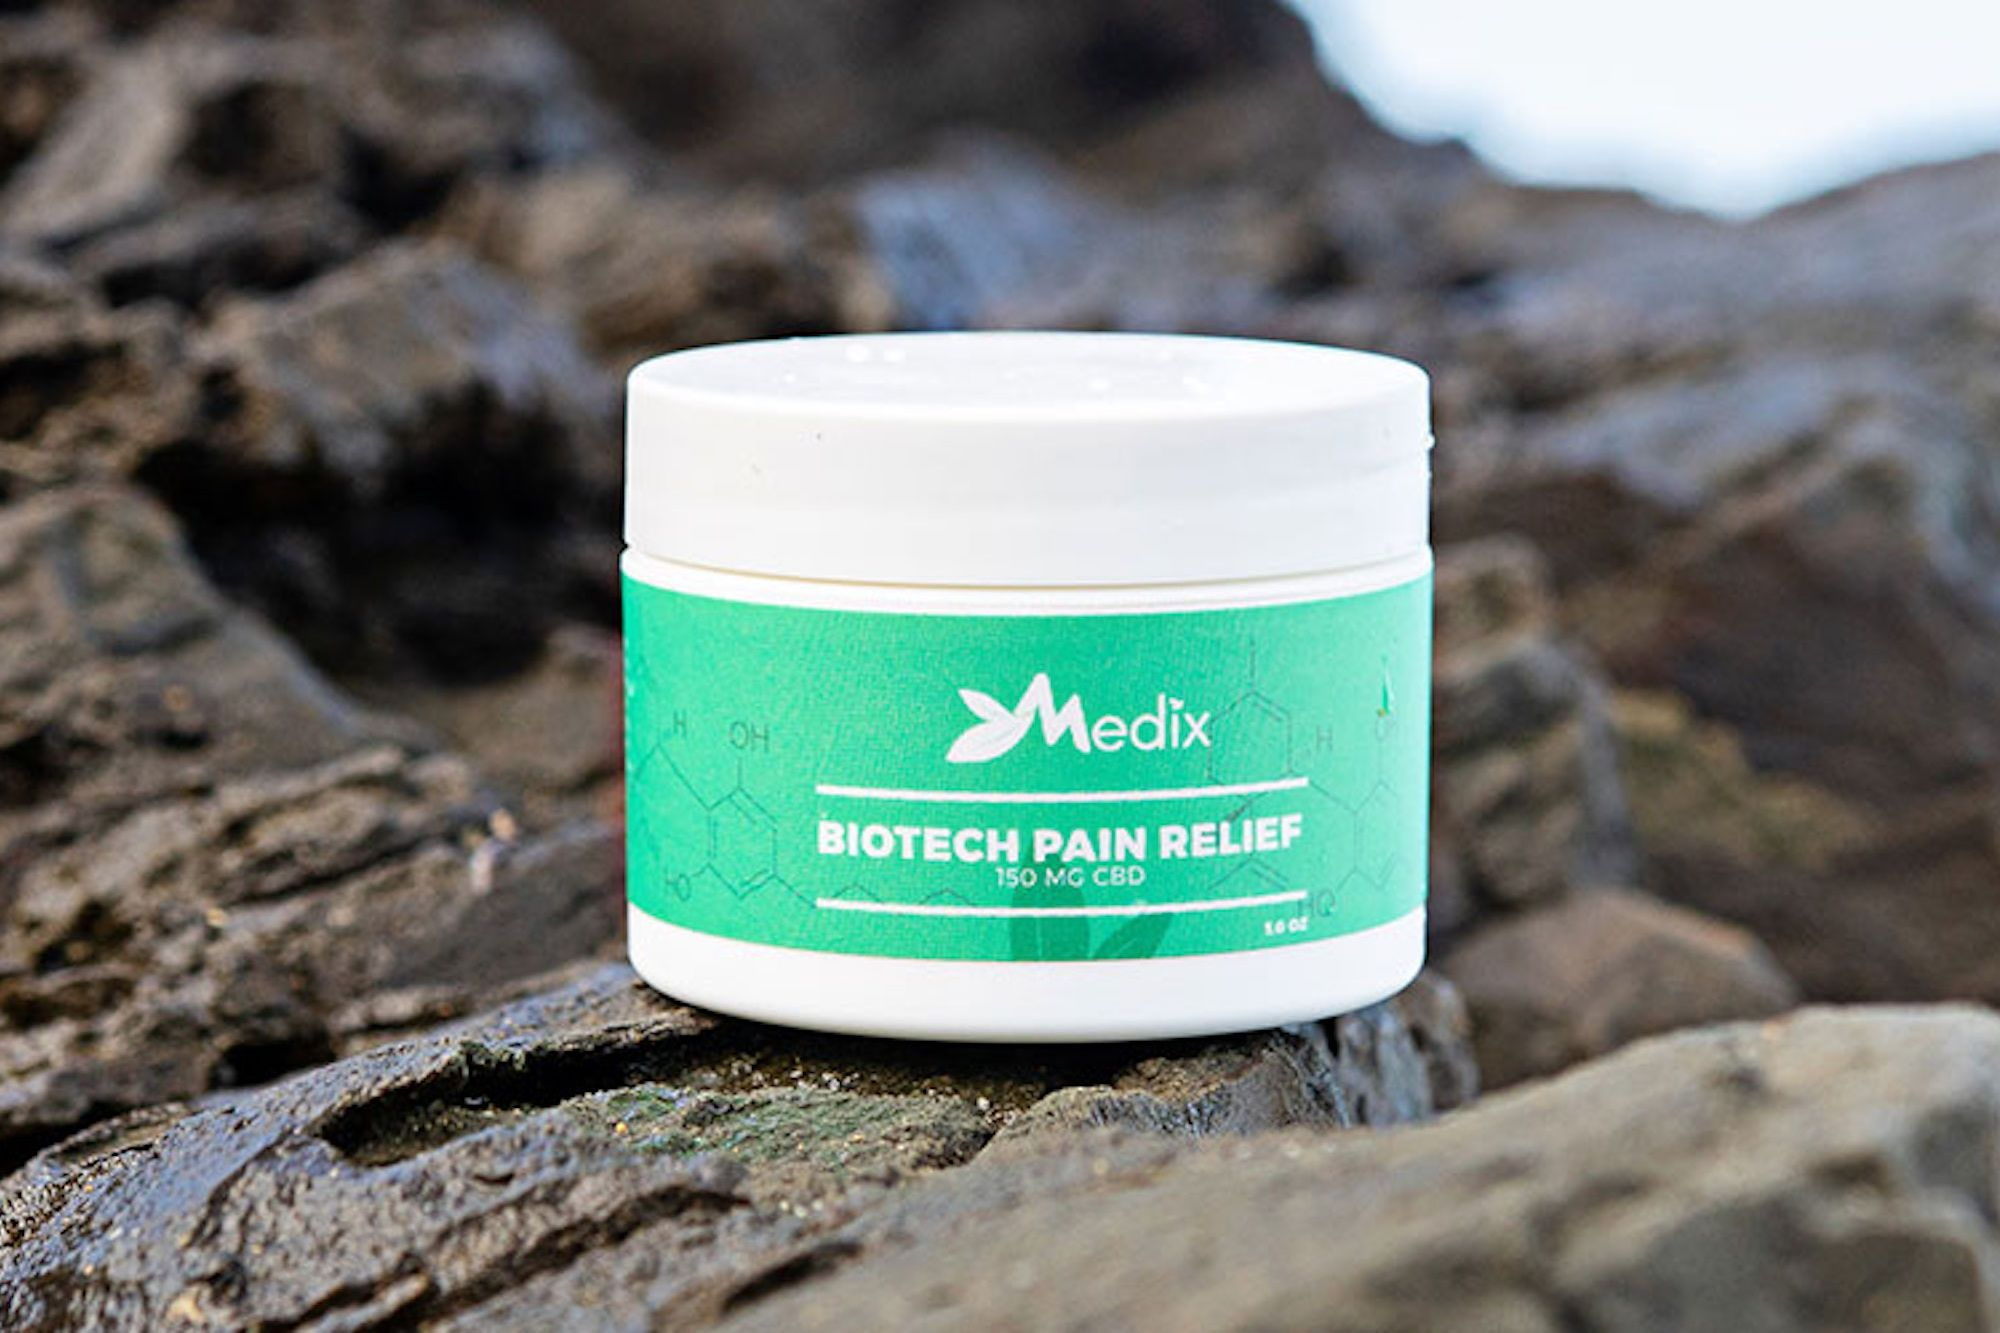 Treat Your Aches and Pains With This CBD Cream